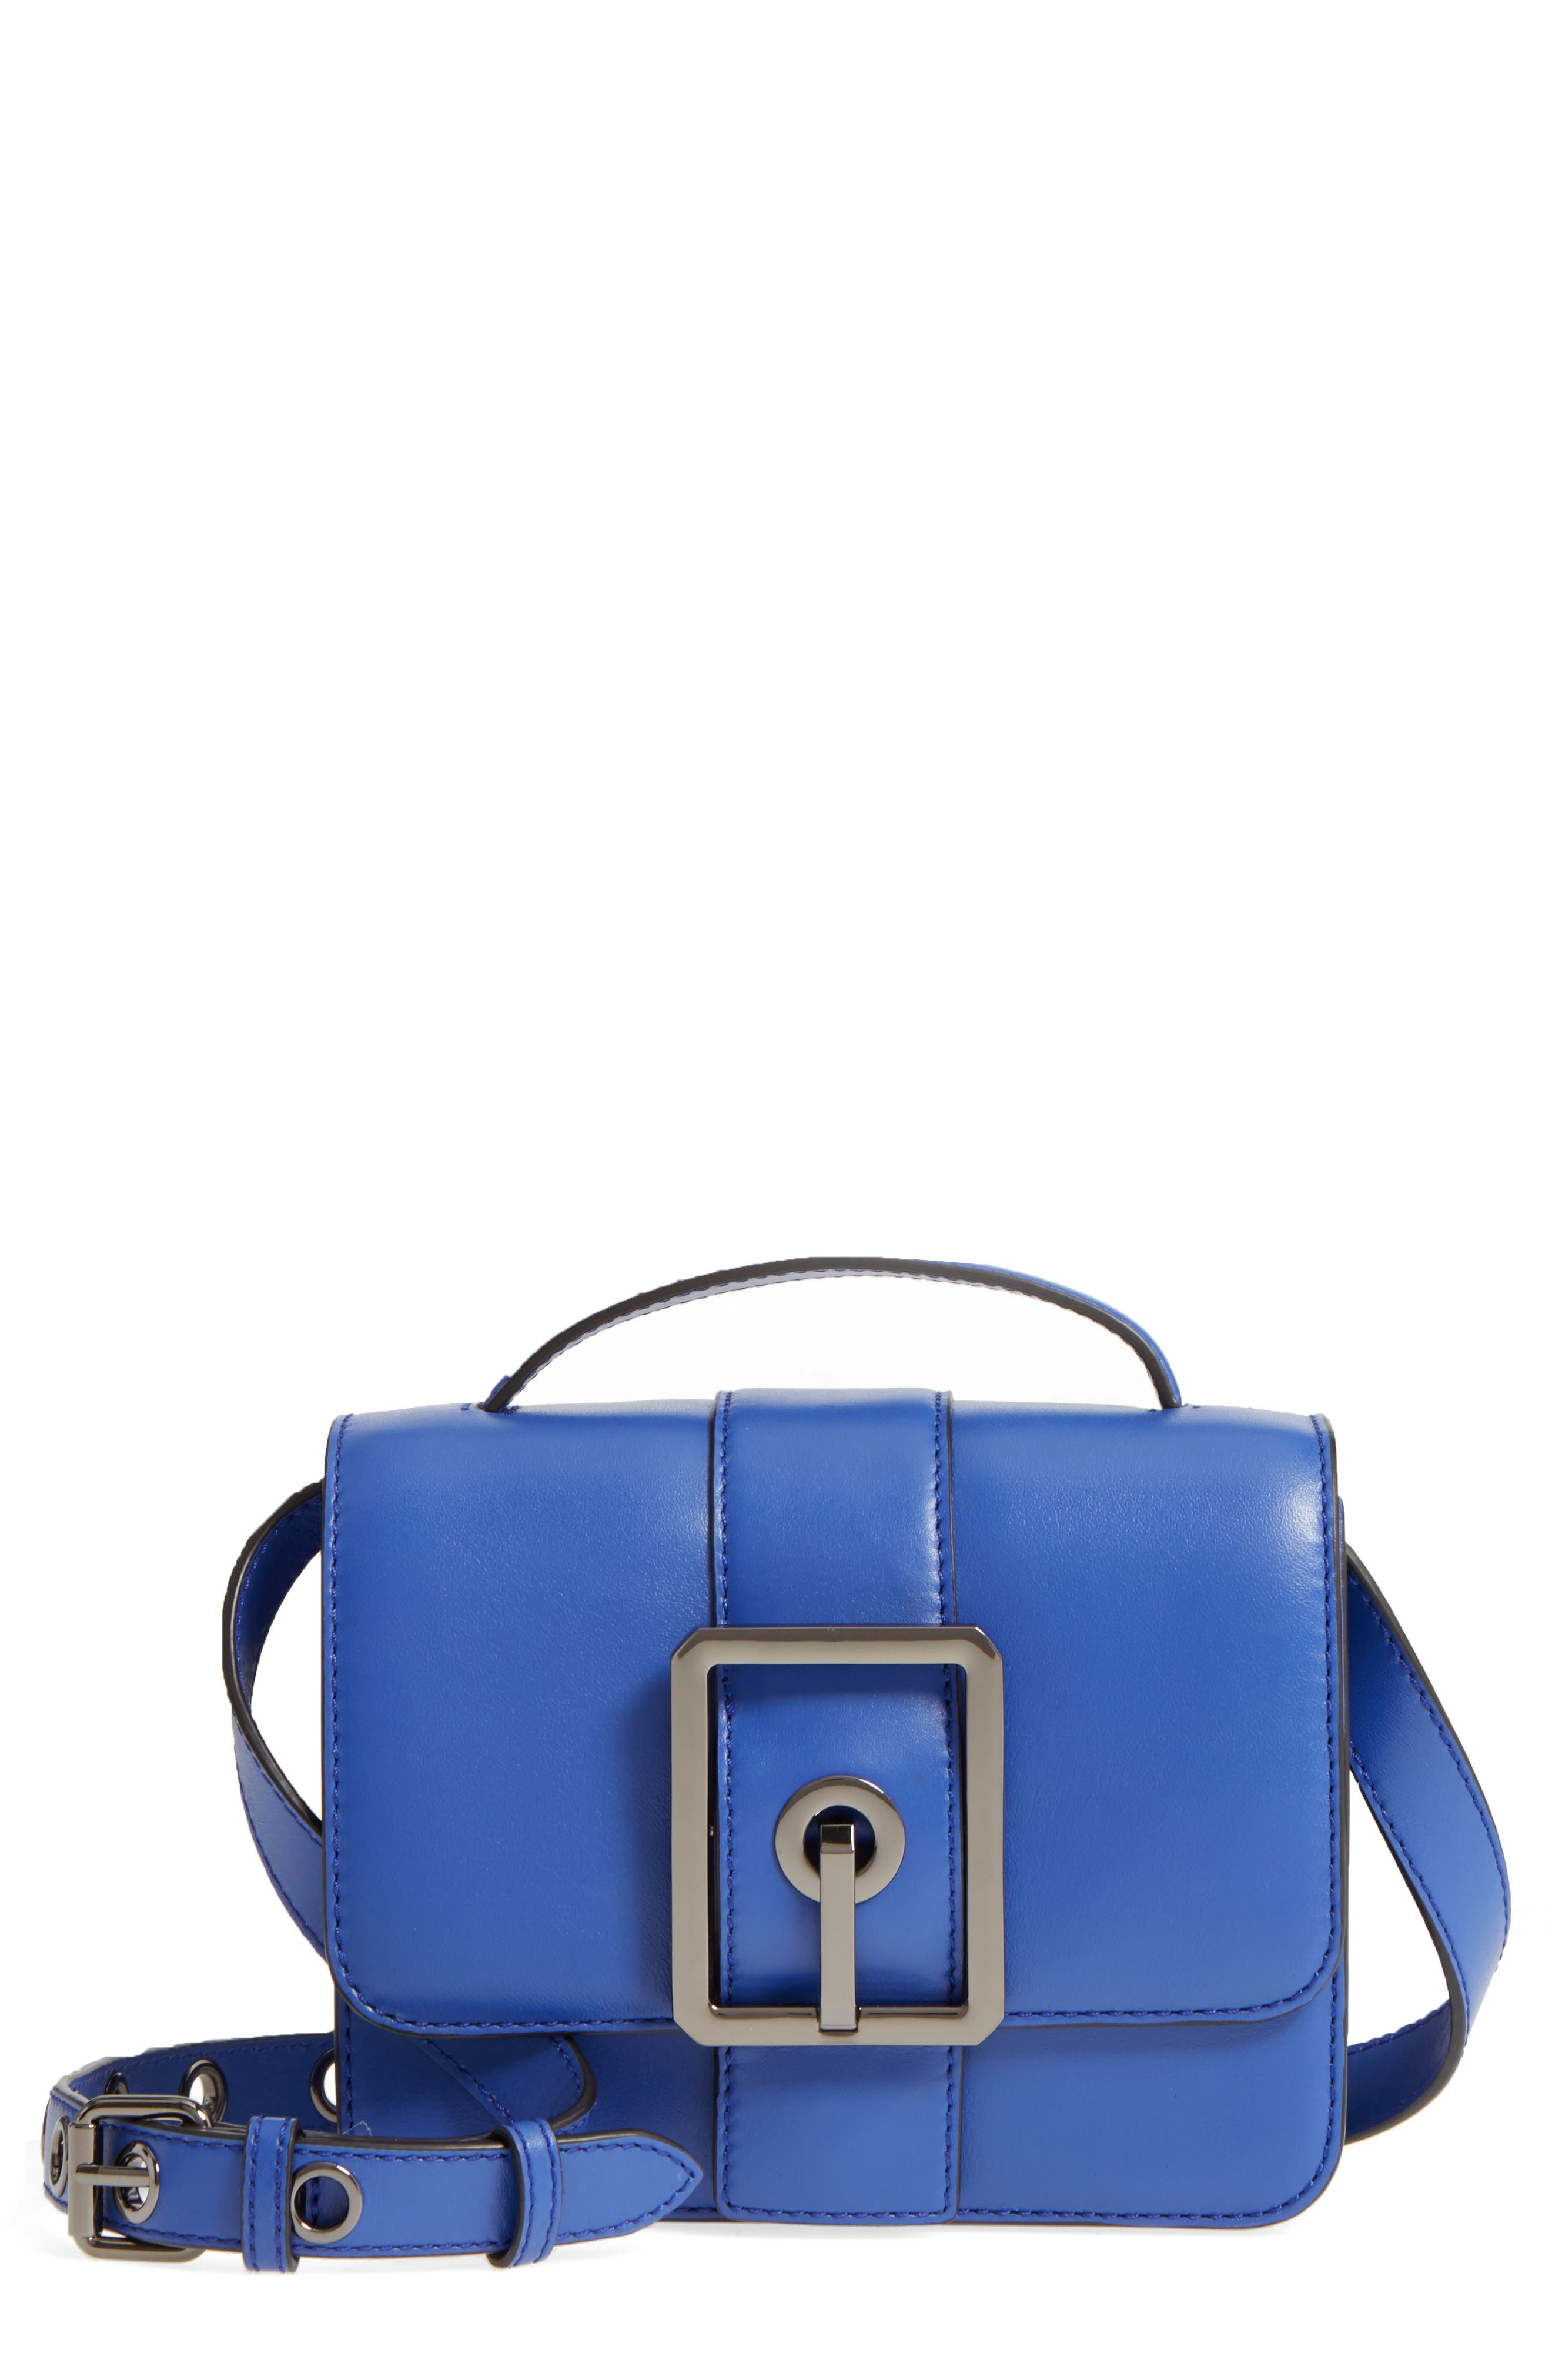 Main Image - Rebecca Minkoff Small Hook Up Leather Top Handle Satchel